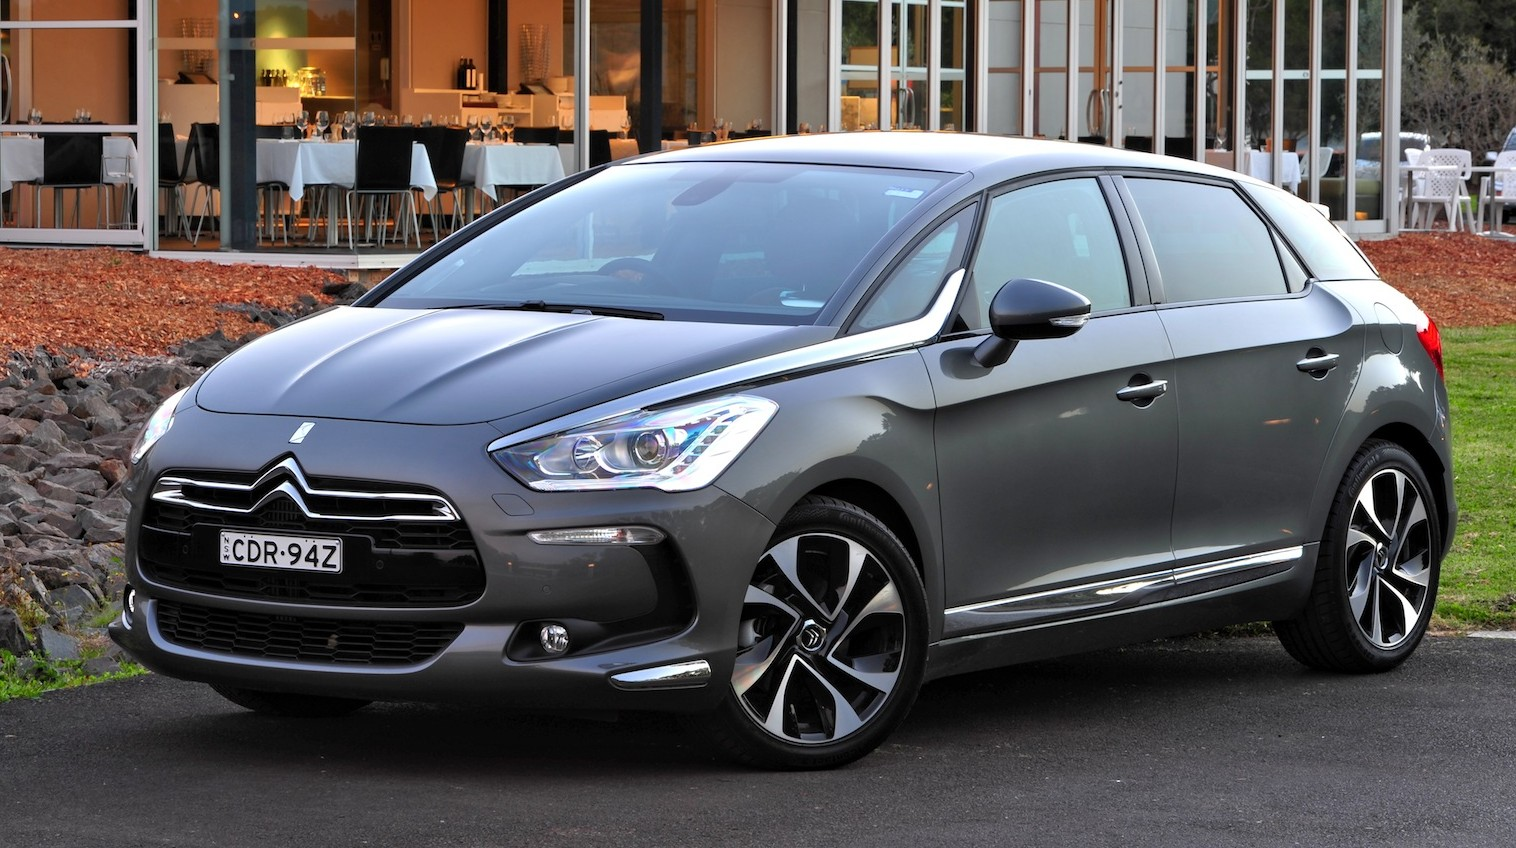 citroen ds5 hdi diesel crossover wagon added to local. Black Bedroom Furniture Sets. Home Design Ideas